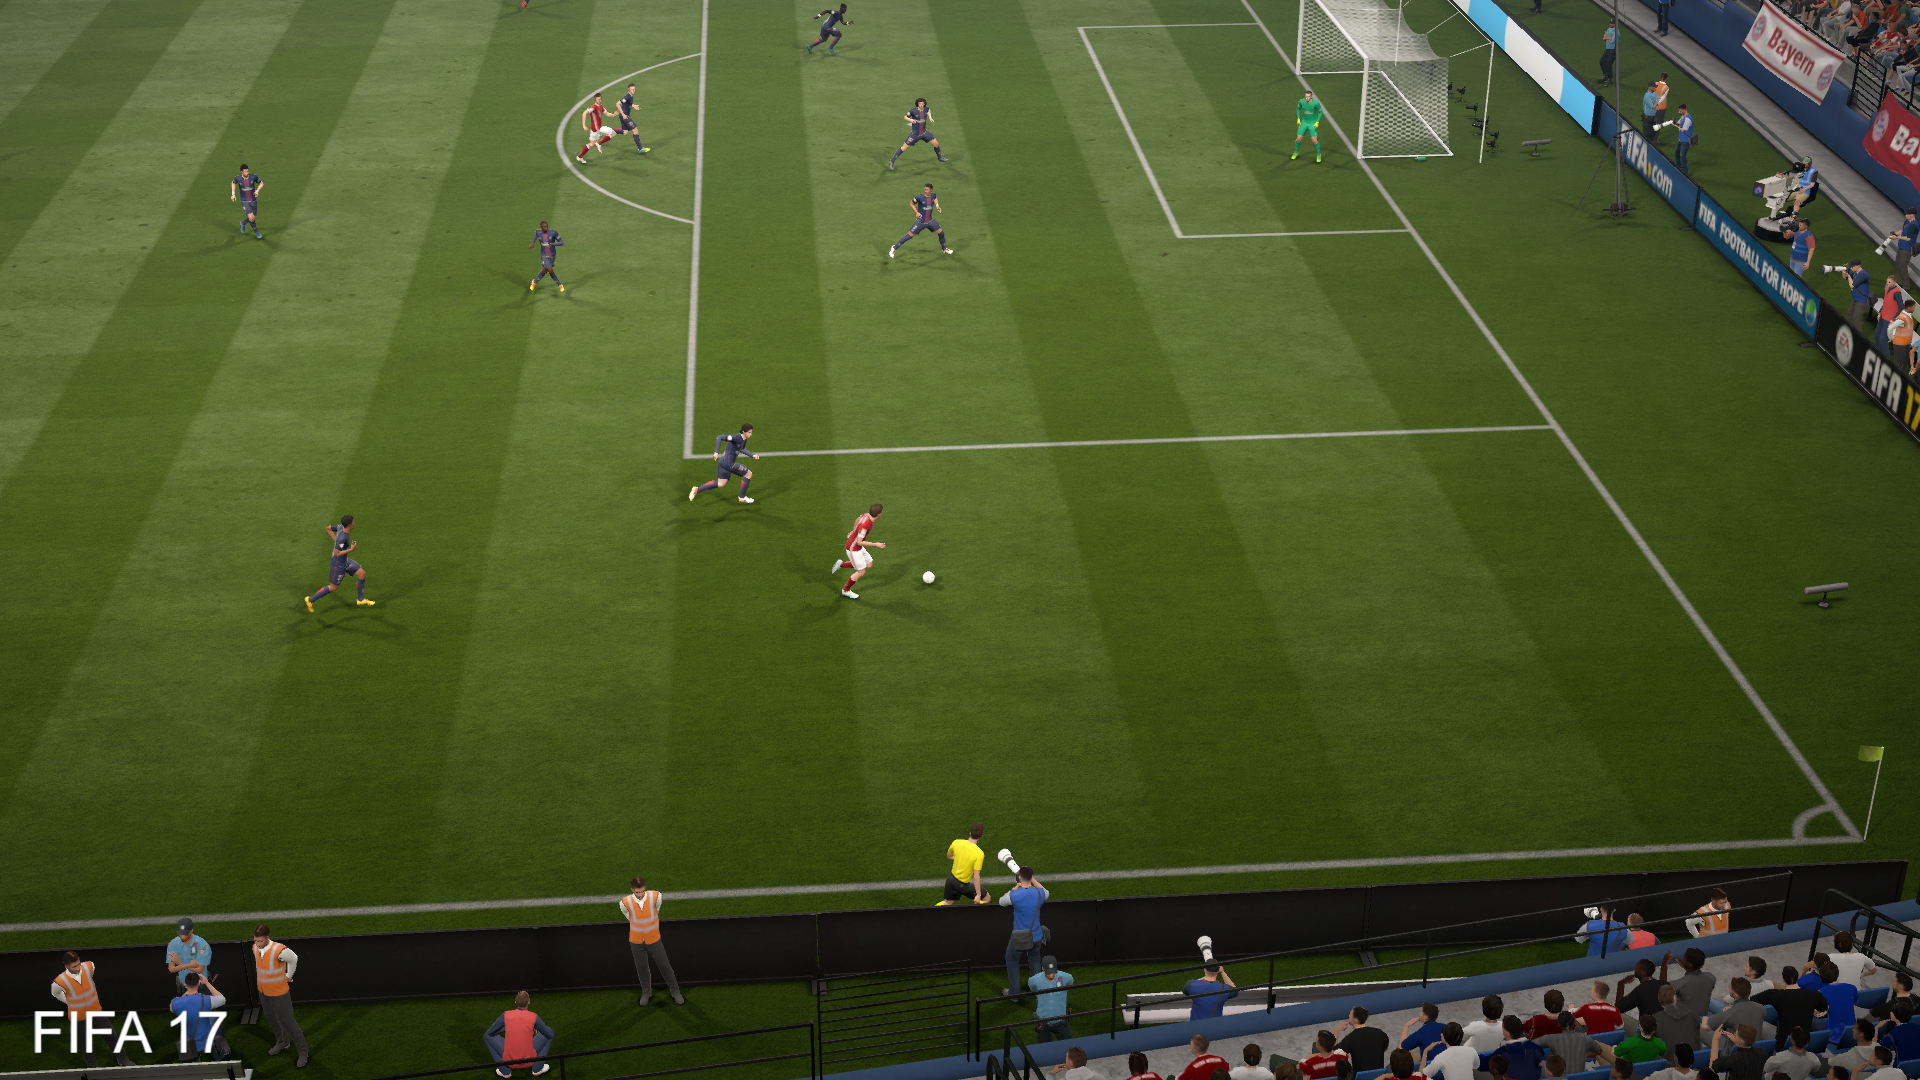 FIFA 17 In-Game